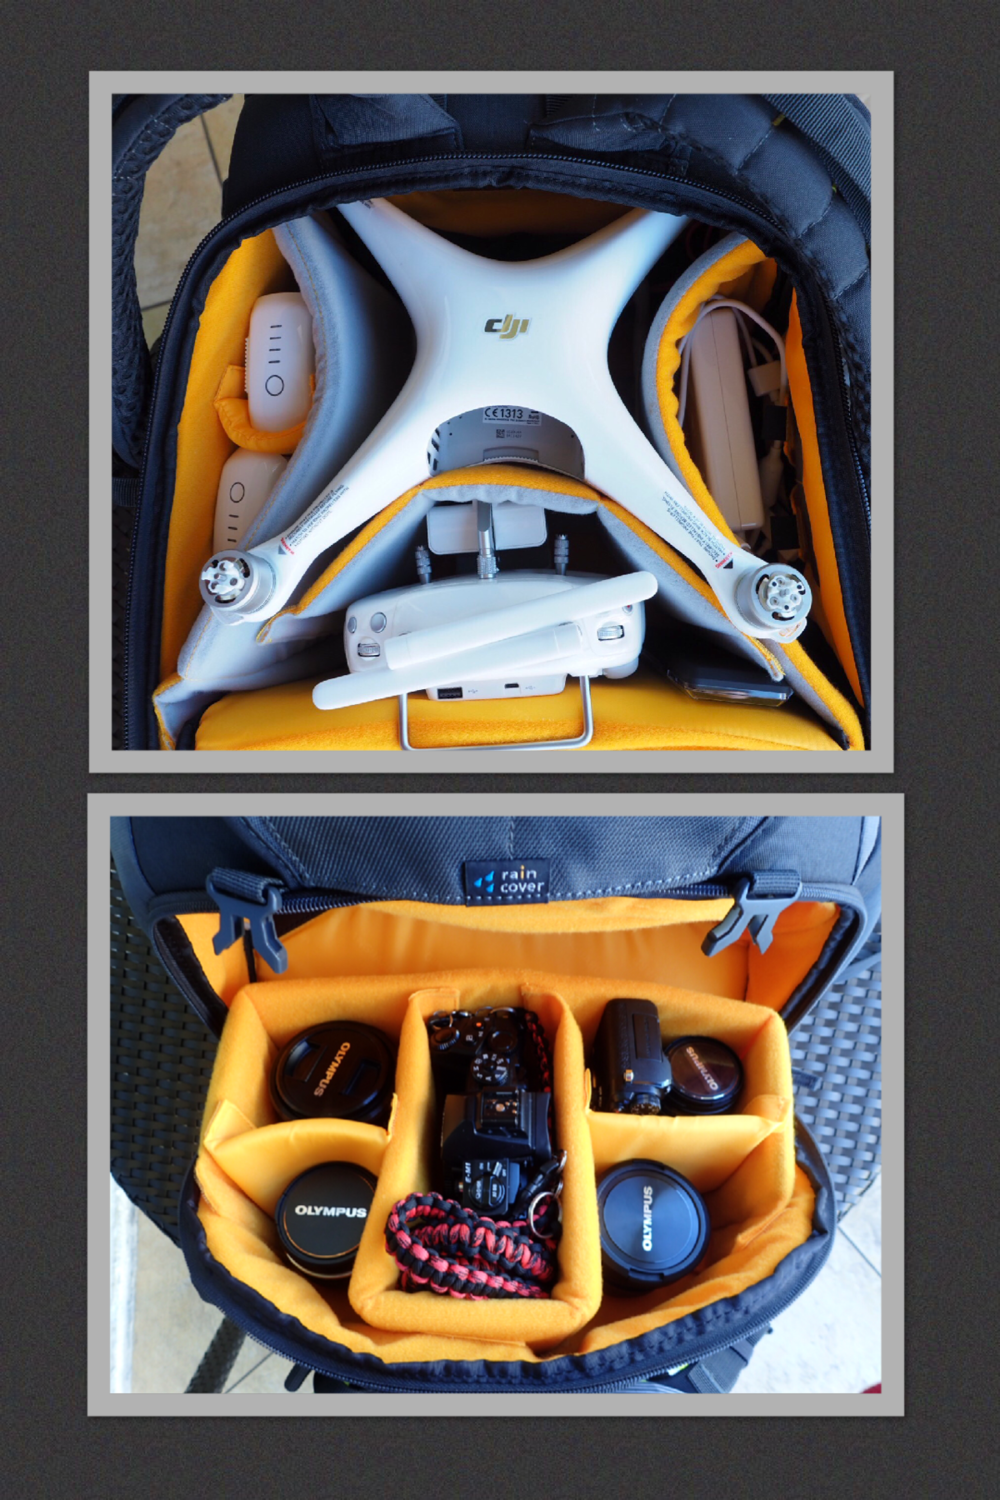 Top: Phantom 4, 2 batteries, charging cords, Polar Pro Filter kit, Remote, Propellers  Bottom: M. Zuiko 12-40mm 2.8, M. Zuiko 75mm 1.8, Olympus E-M1, Olympus PEN-F, M. Zuiko 60mm 2.8, M. Zuiko 8mm 1.8 Fisheye